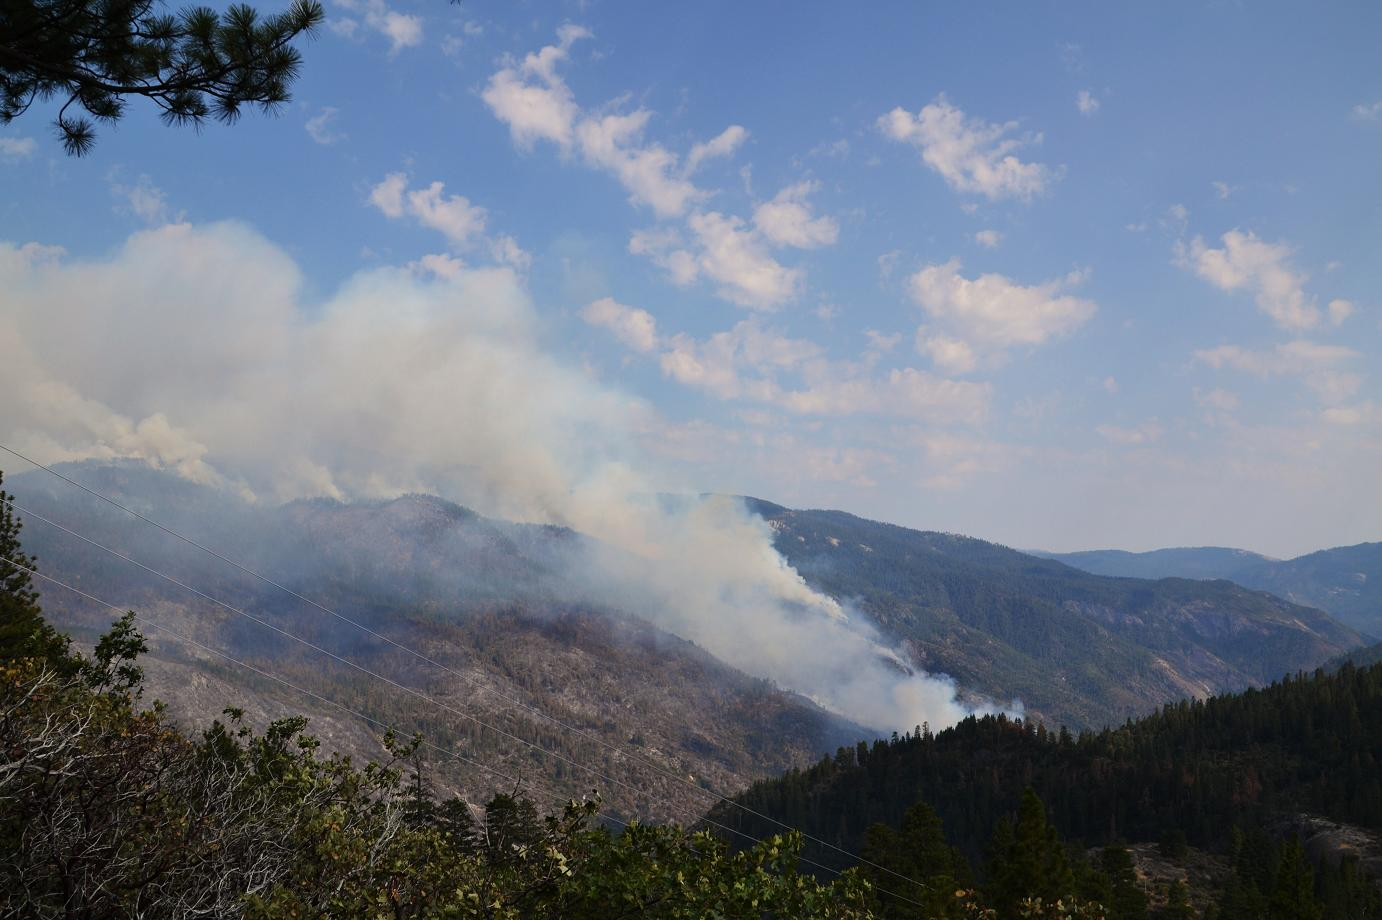 Southern end of fire from just below Mile High Vista - photo by Gina Clugston